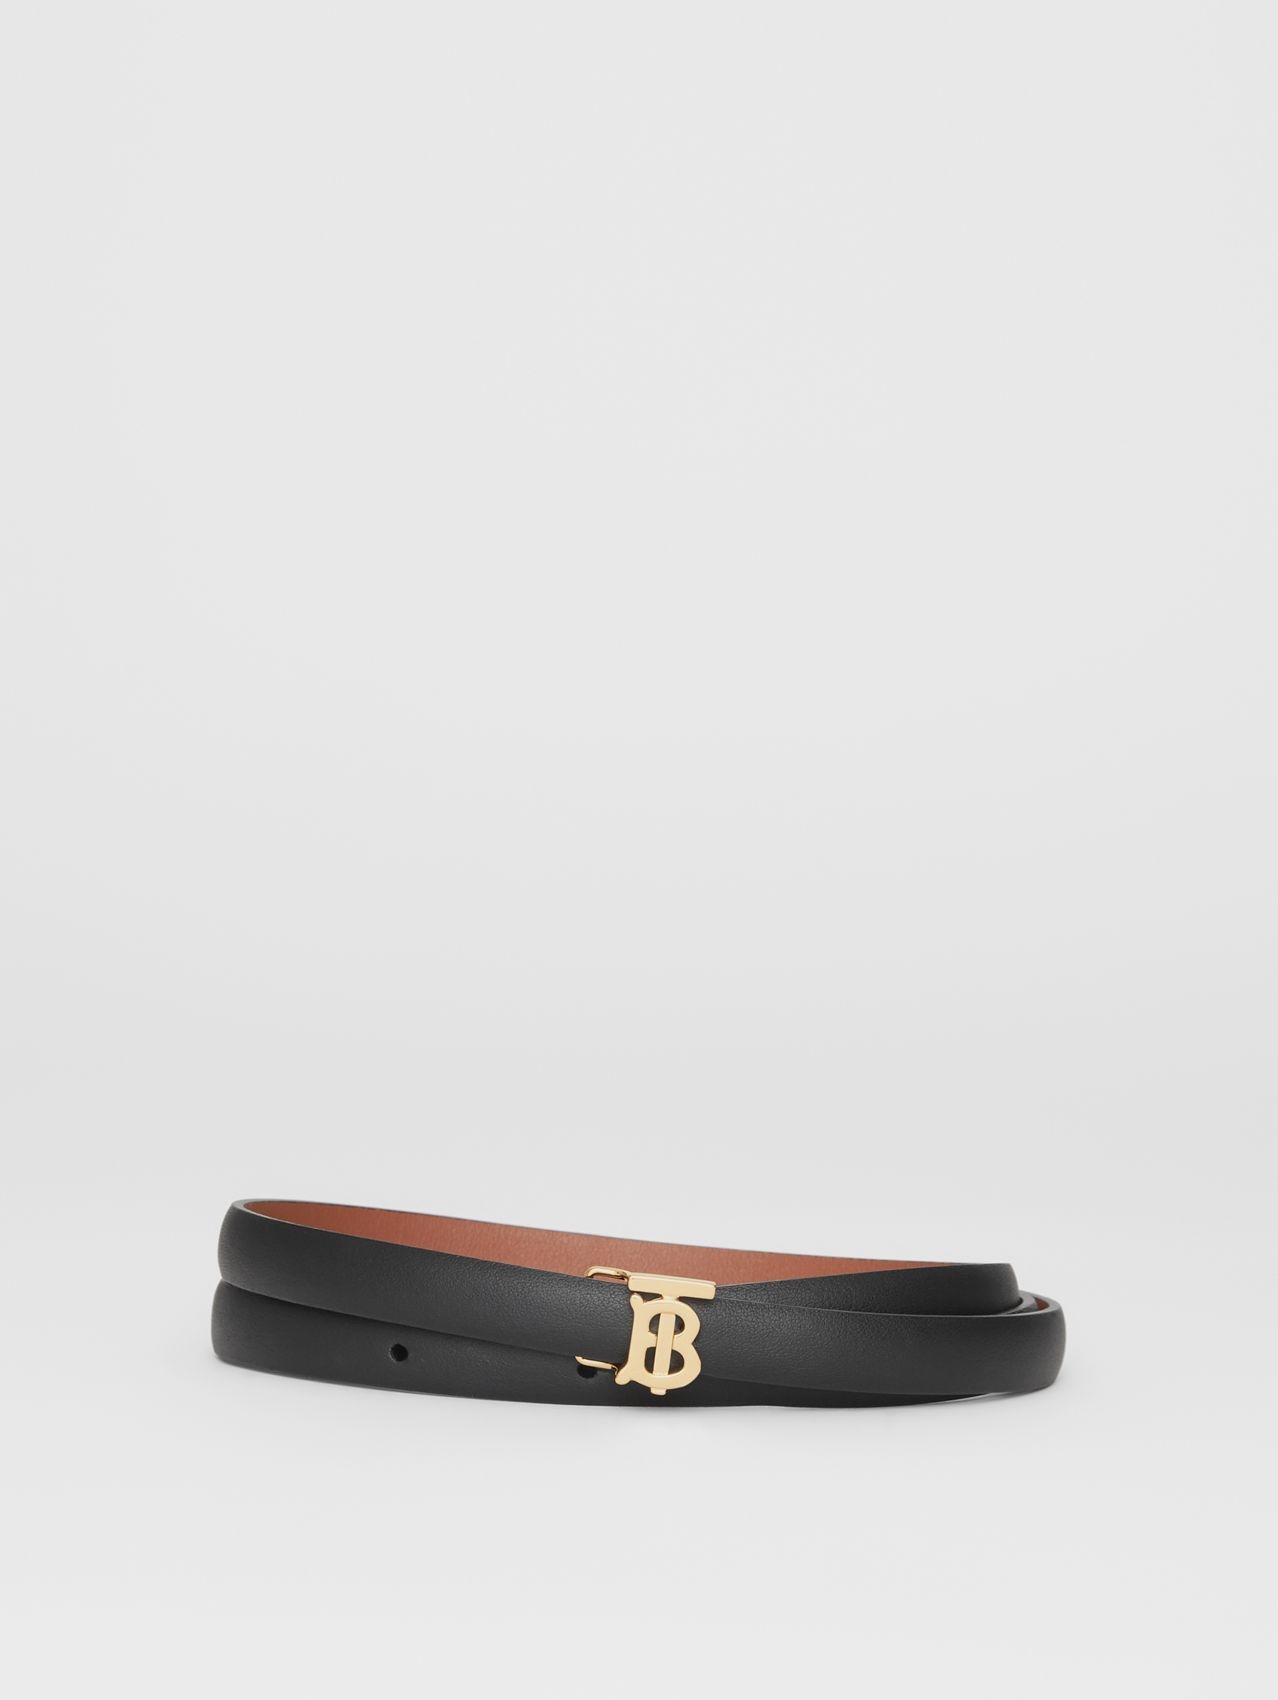 Reversible Monogram Motif Leather Wrap Belt in Black/malt Brown